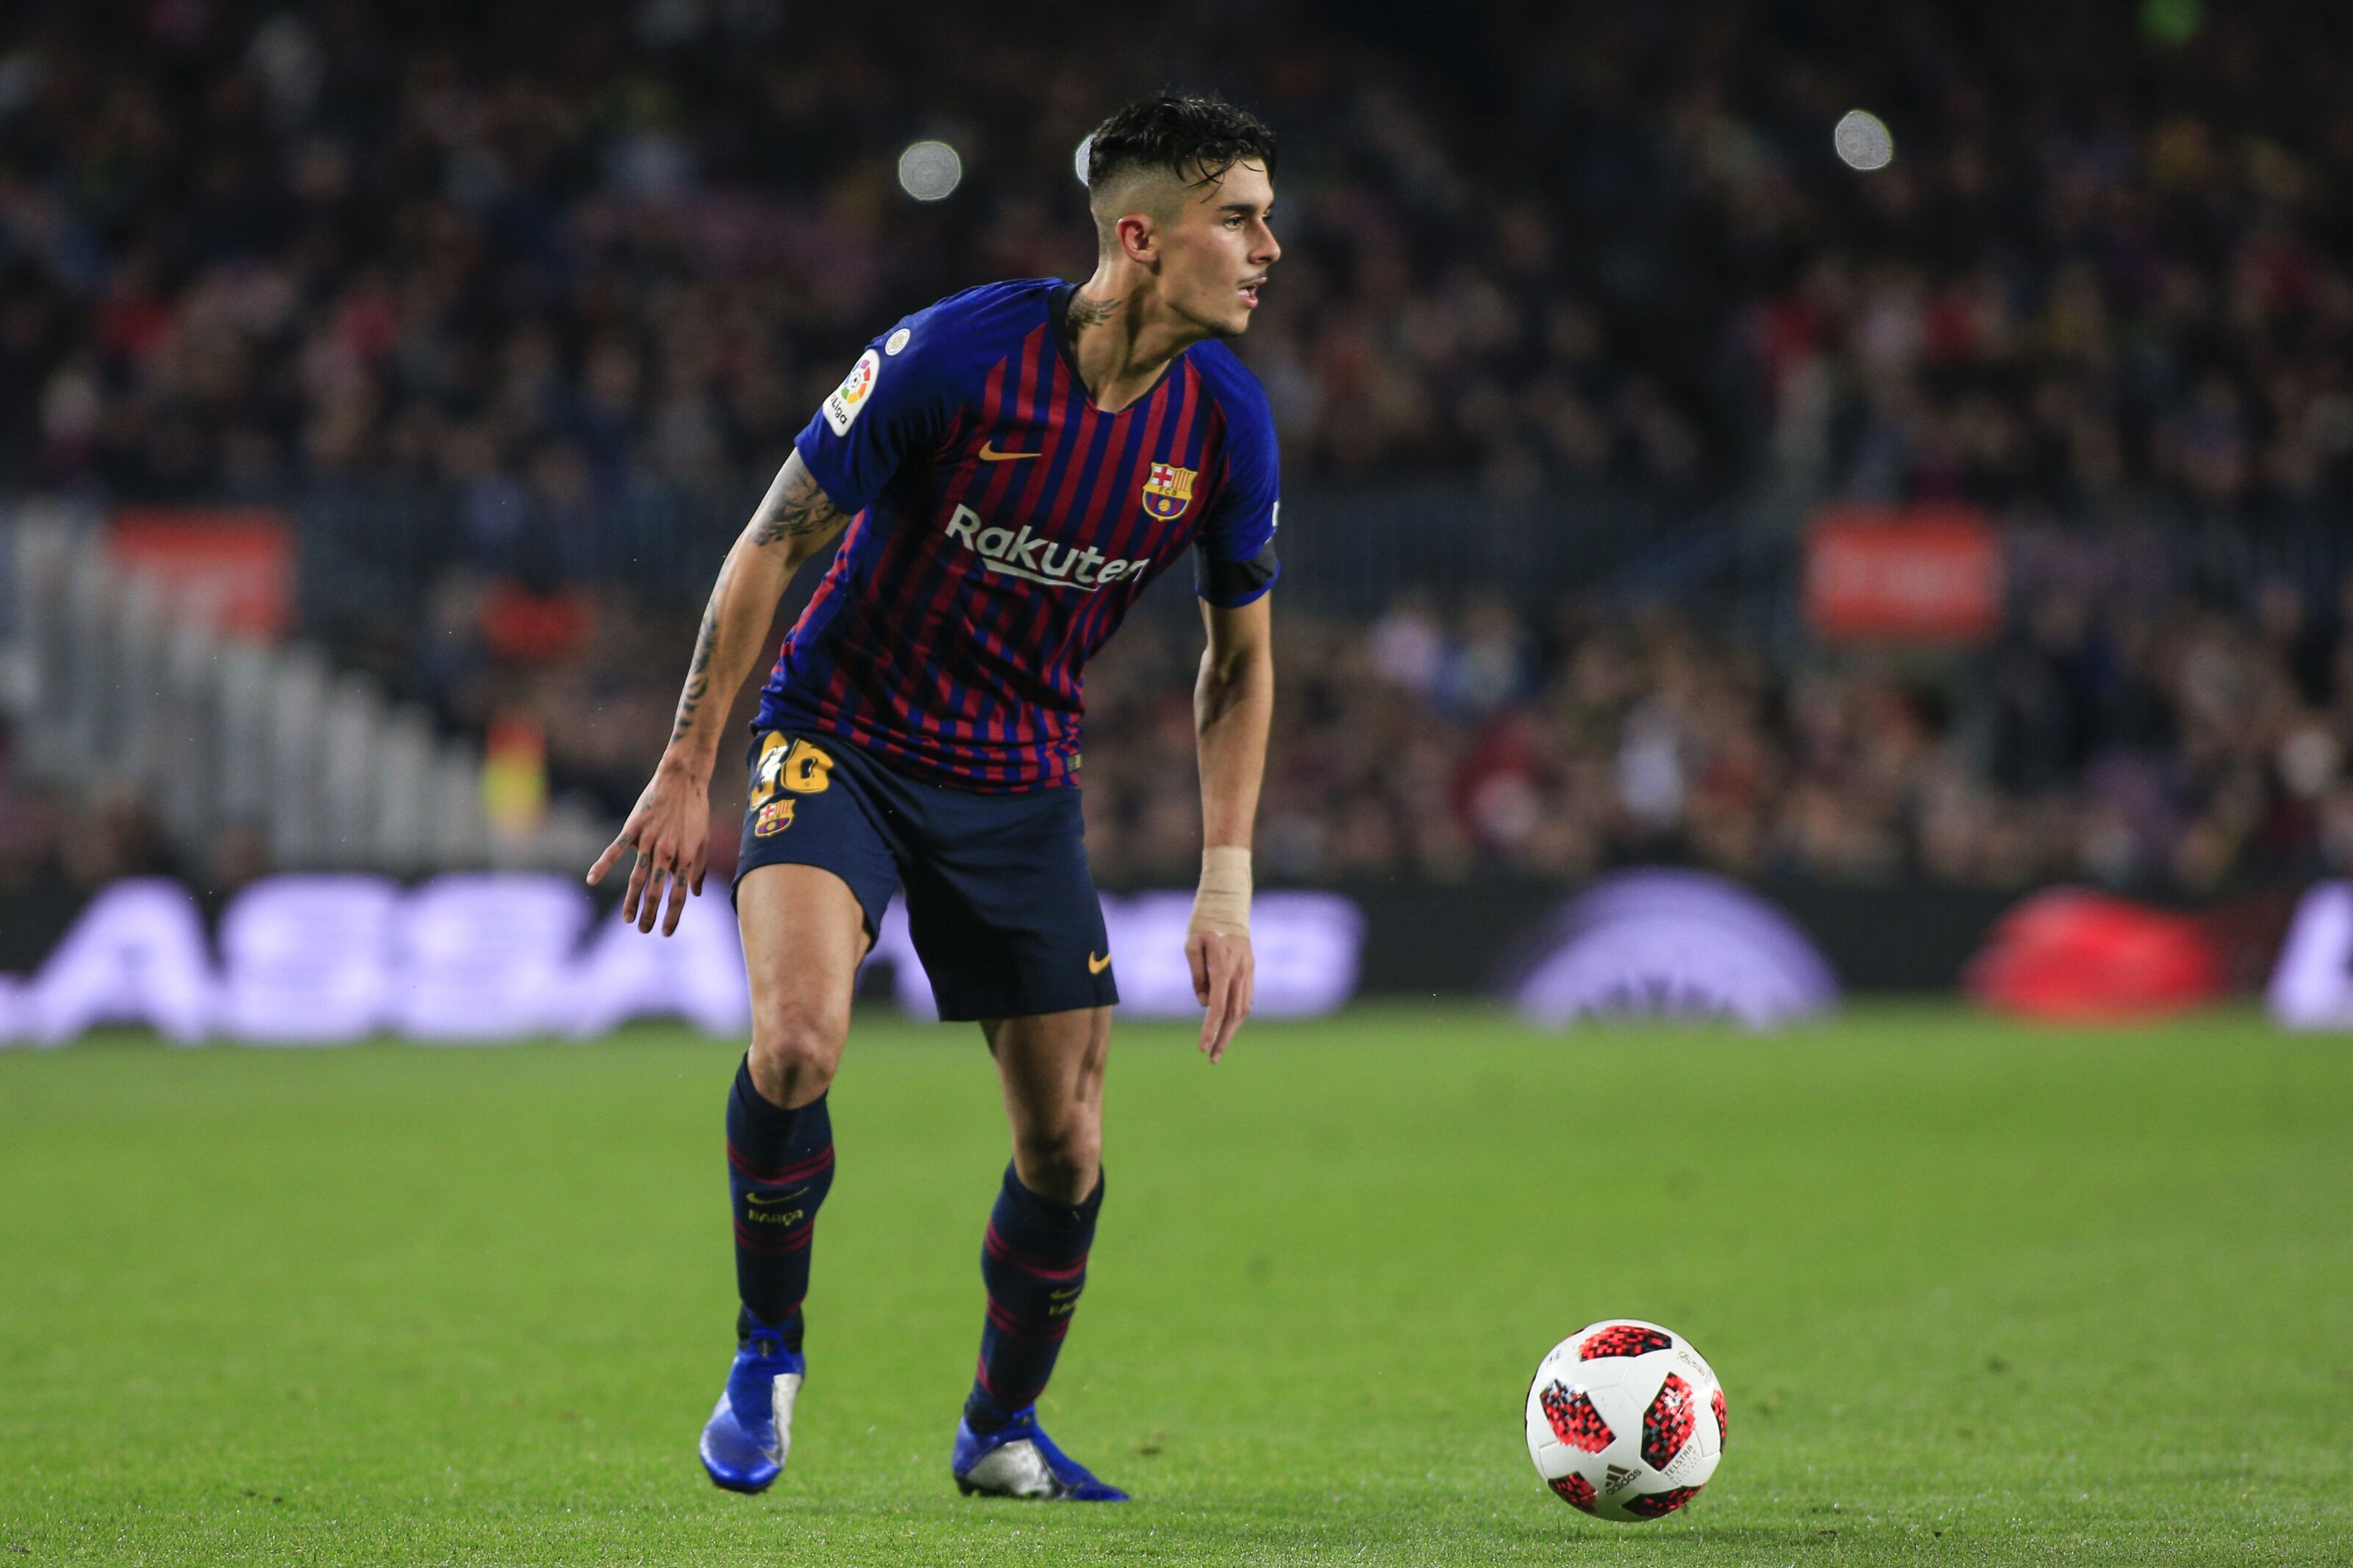 How can Barcelona resolve the centre-back situation in the squad?